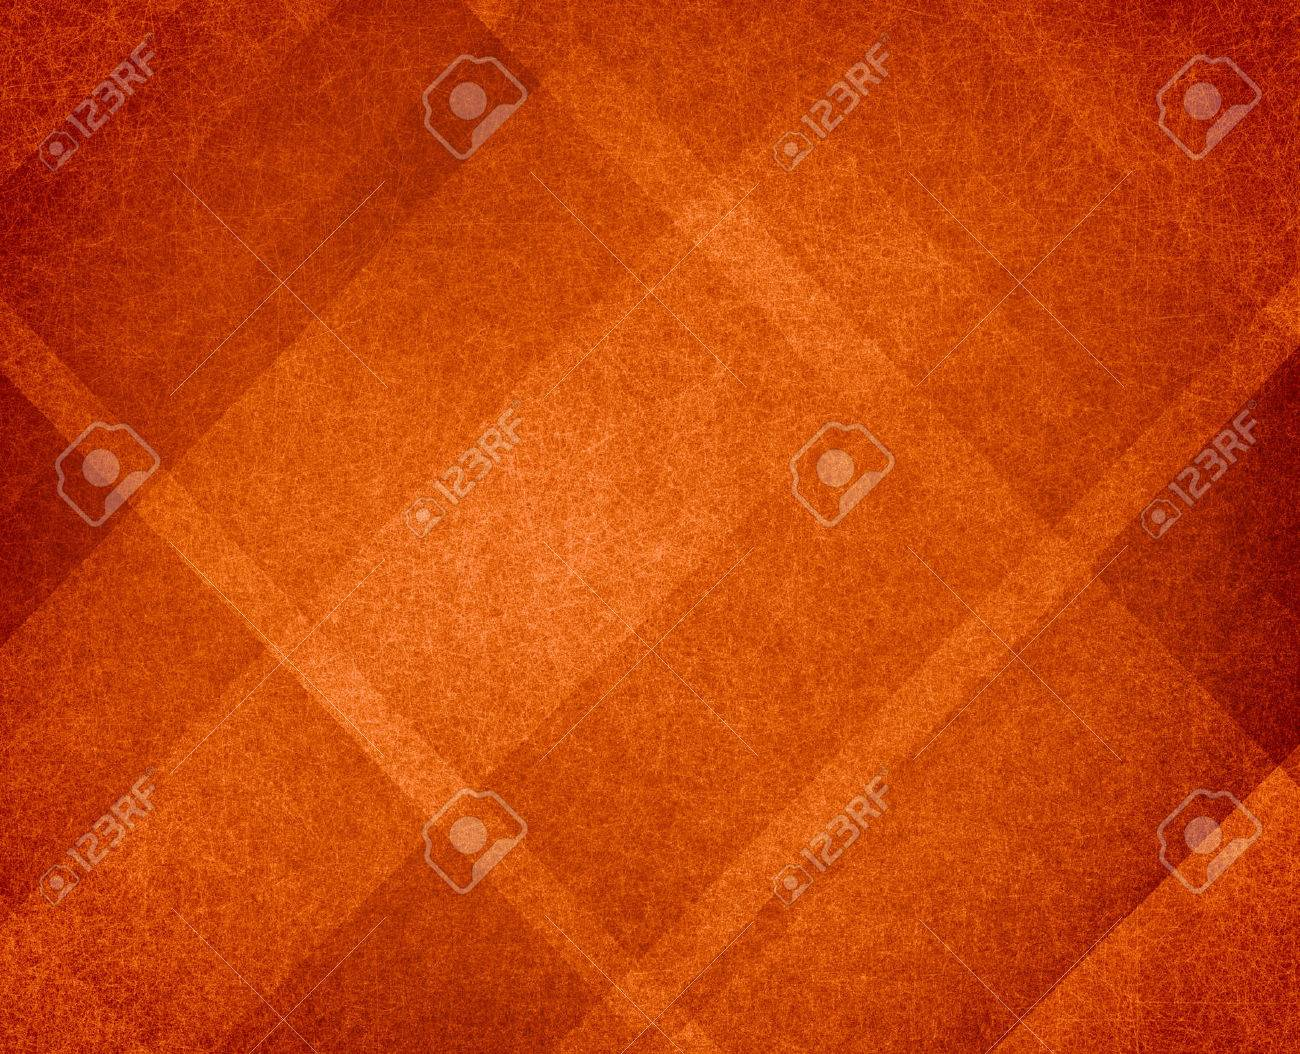 burnt orange autumn background design with lines and angles - 44625236